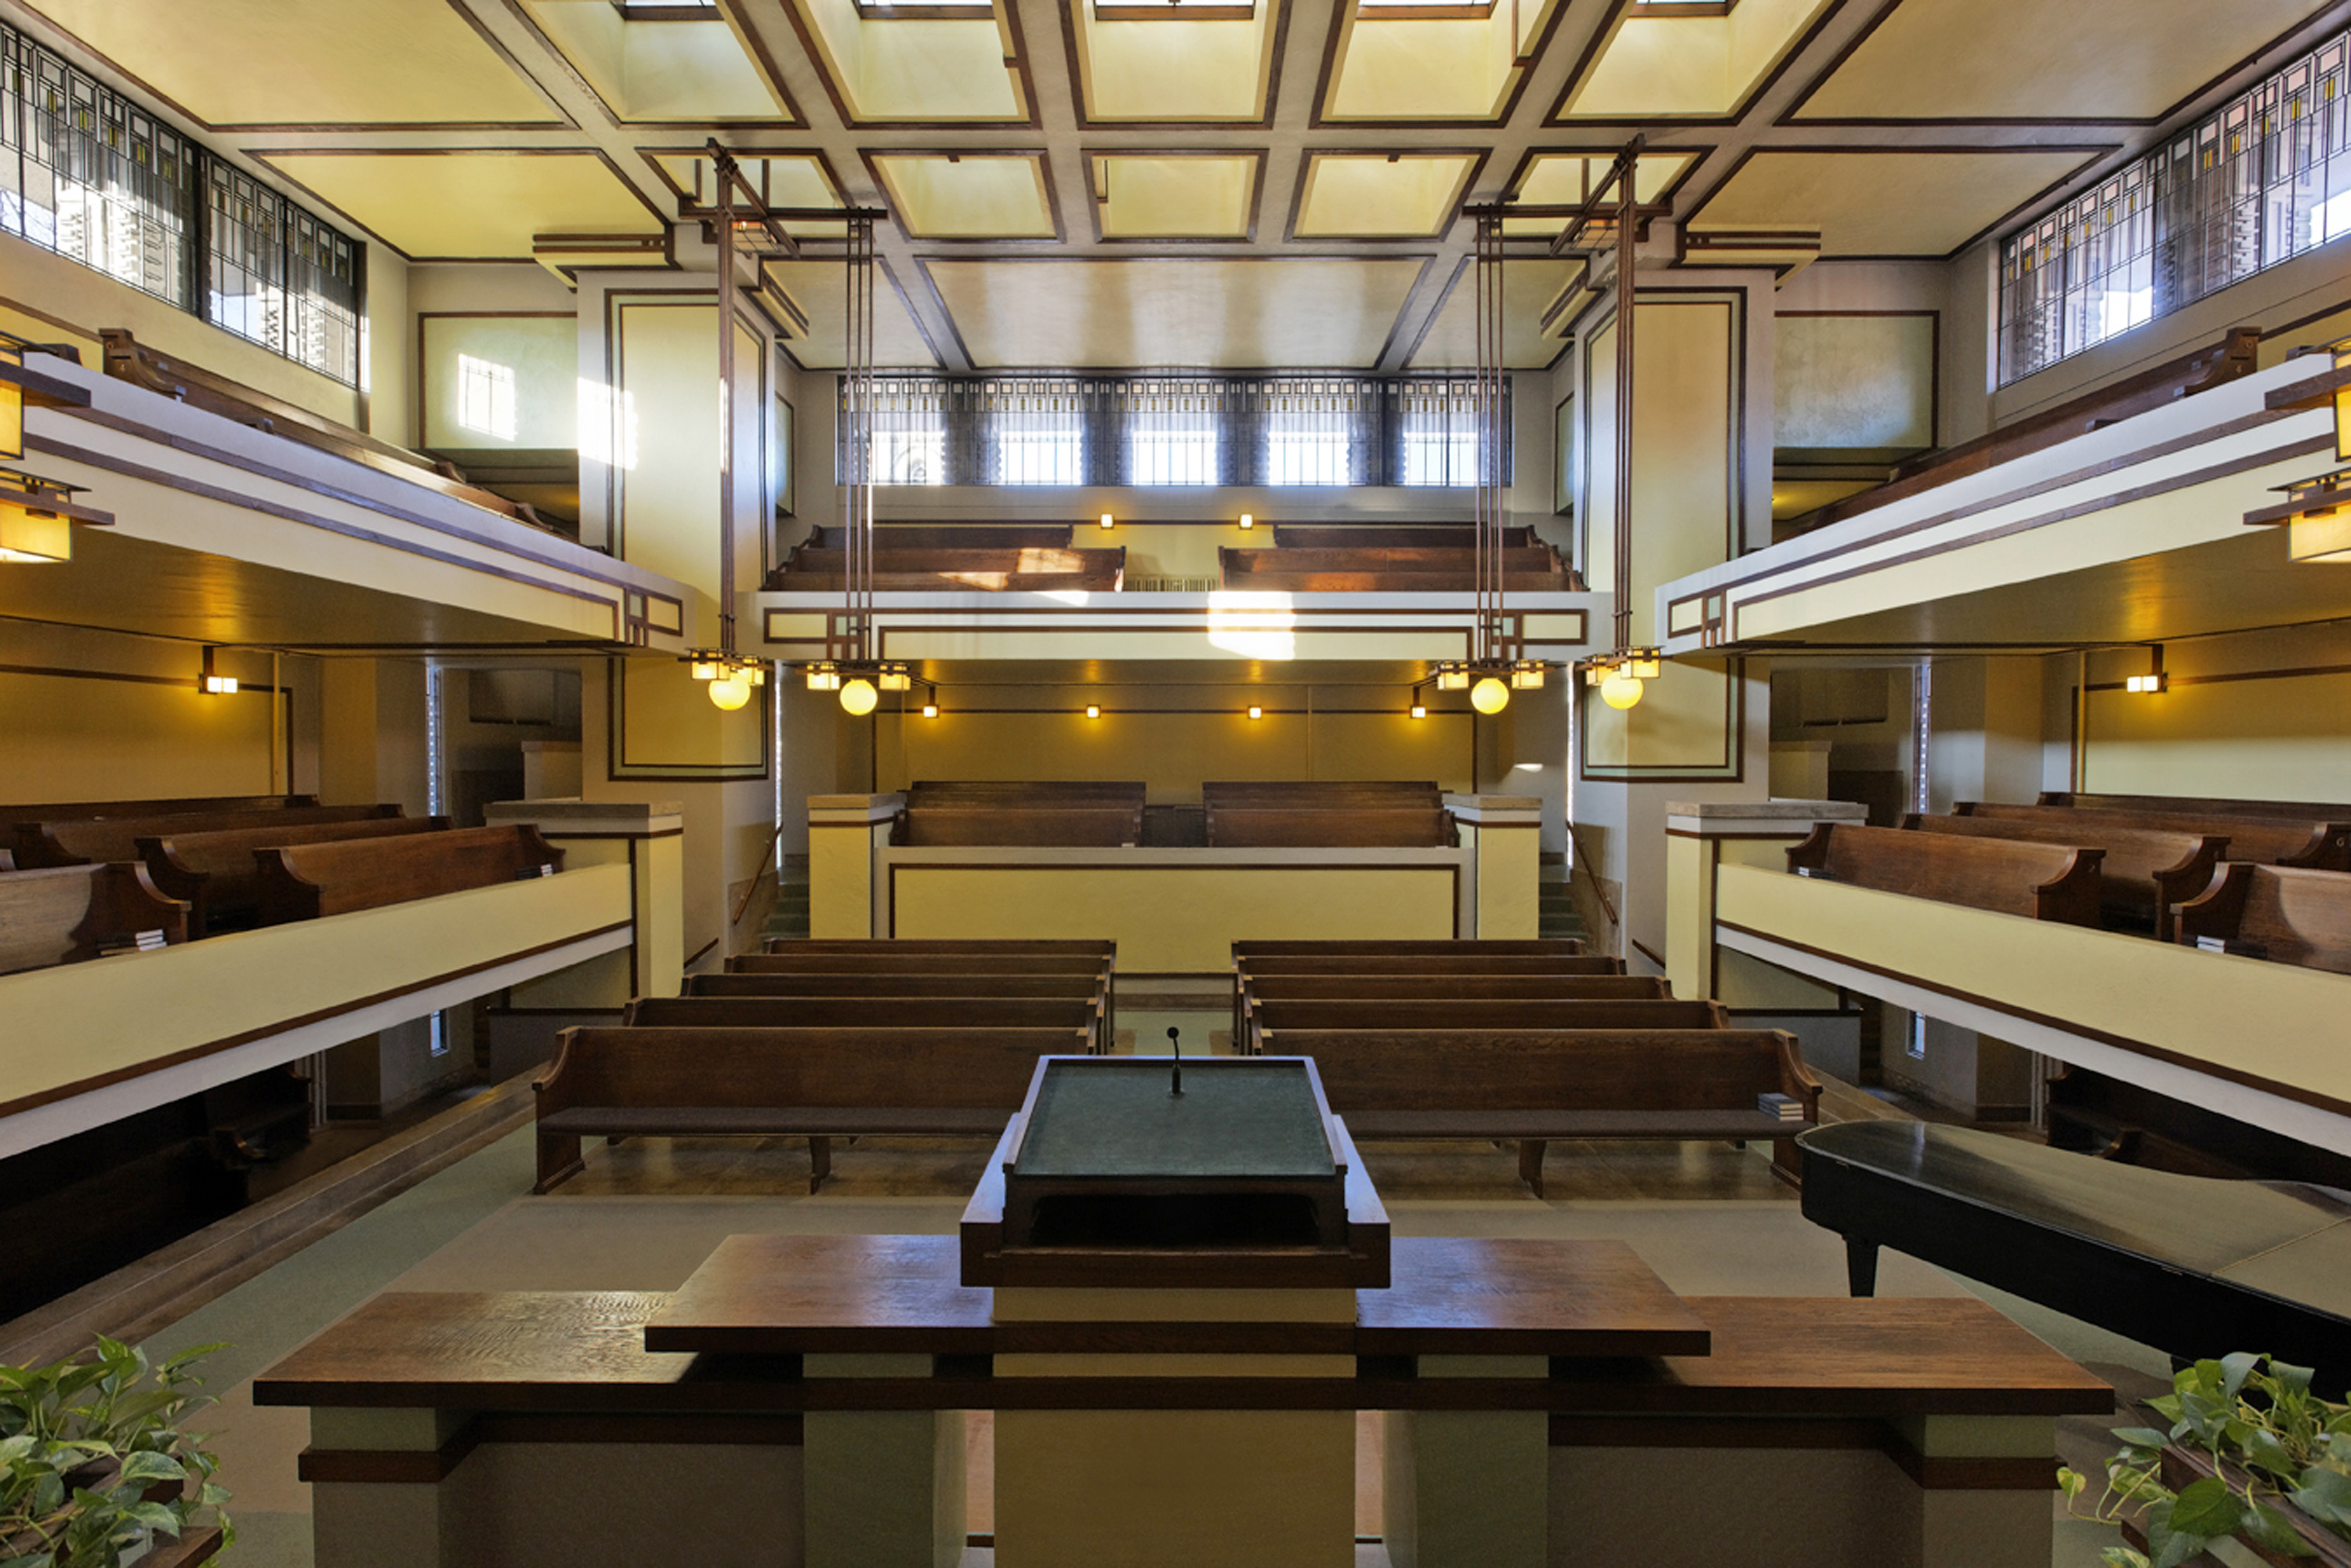 10 Buildings By Frank Lloyd Wright Nominated To The World Heritage